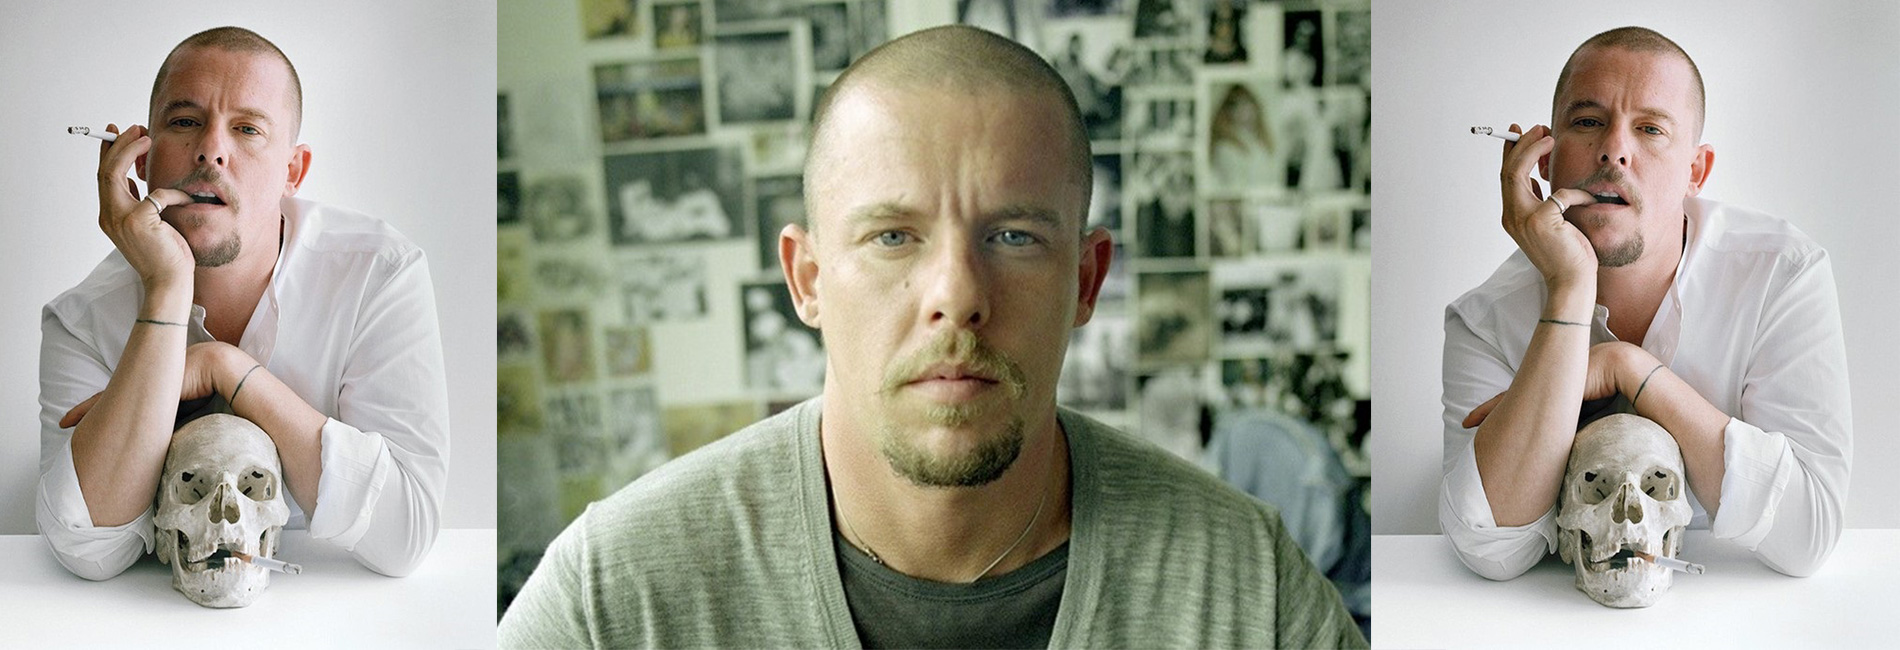 Alexander McQueen, L'enfant terrible